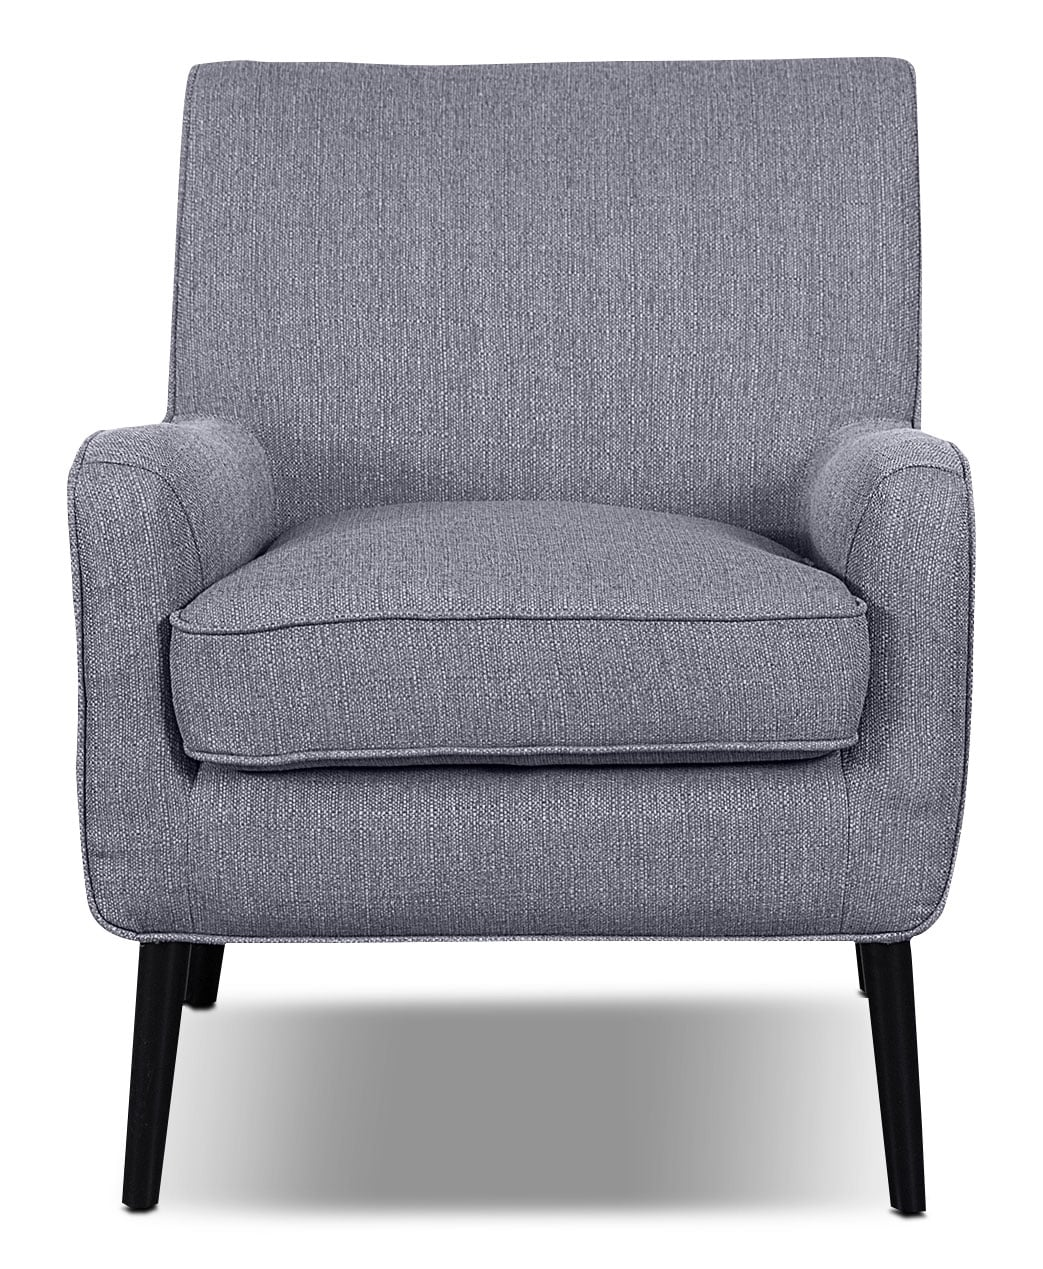 Galo Linen-Look Fabric Accent Chair - Granite